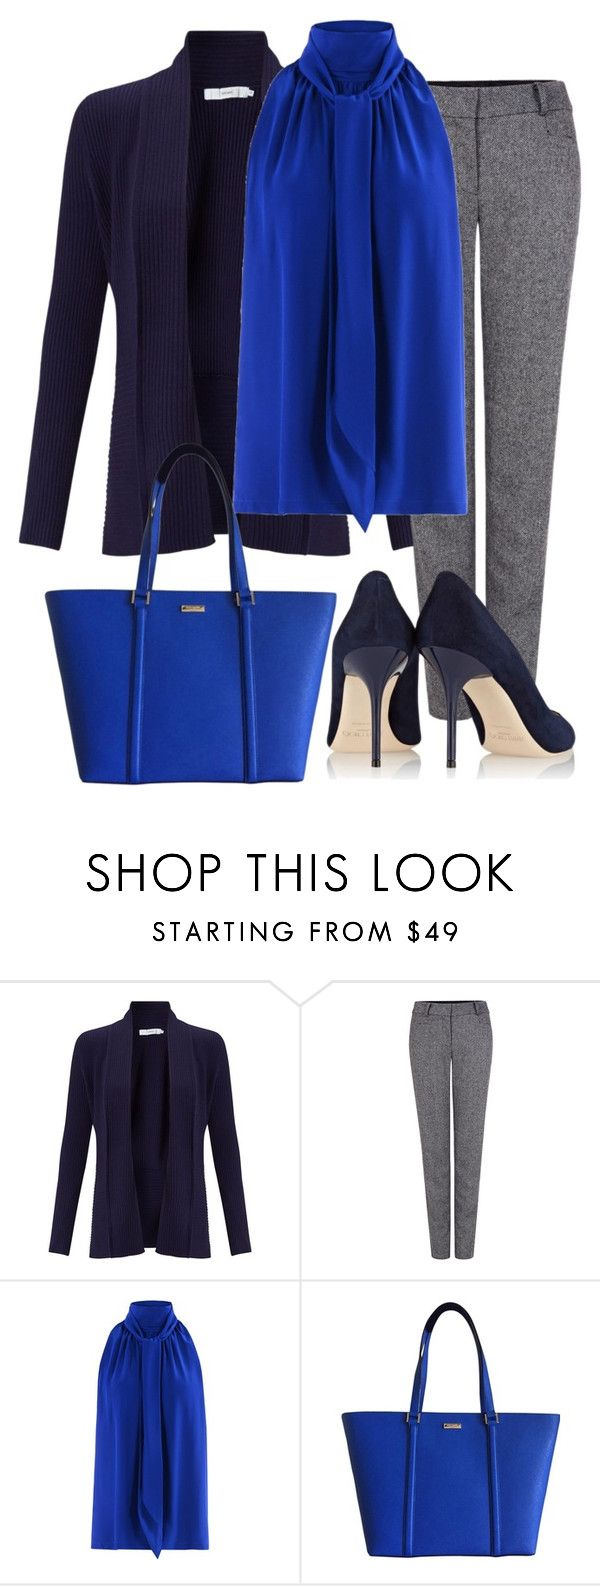 """Untitled 22"" by havlova-blanka on Polyvore featuring John Lewis, Pink Tartan, Barbara Bui, Kate Spade and Jimmy Choo"